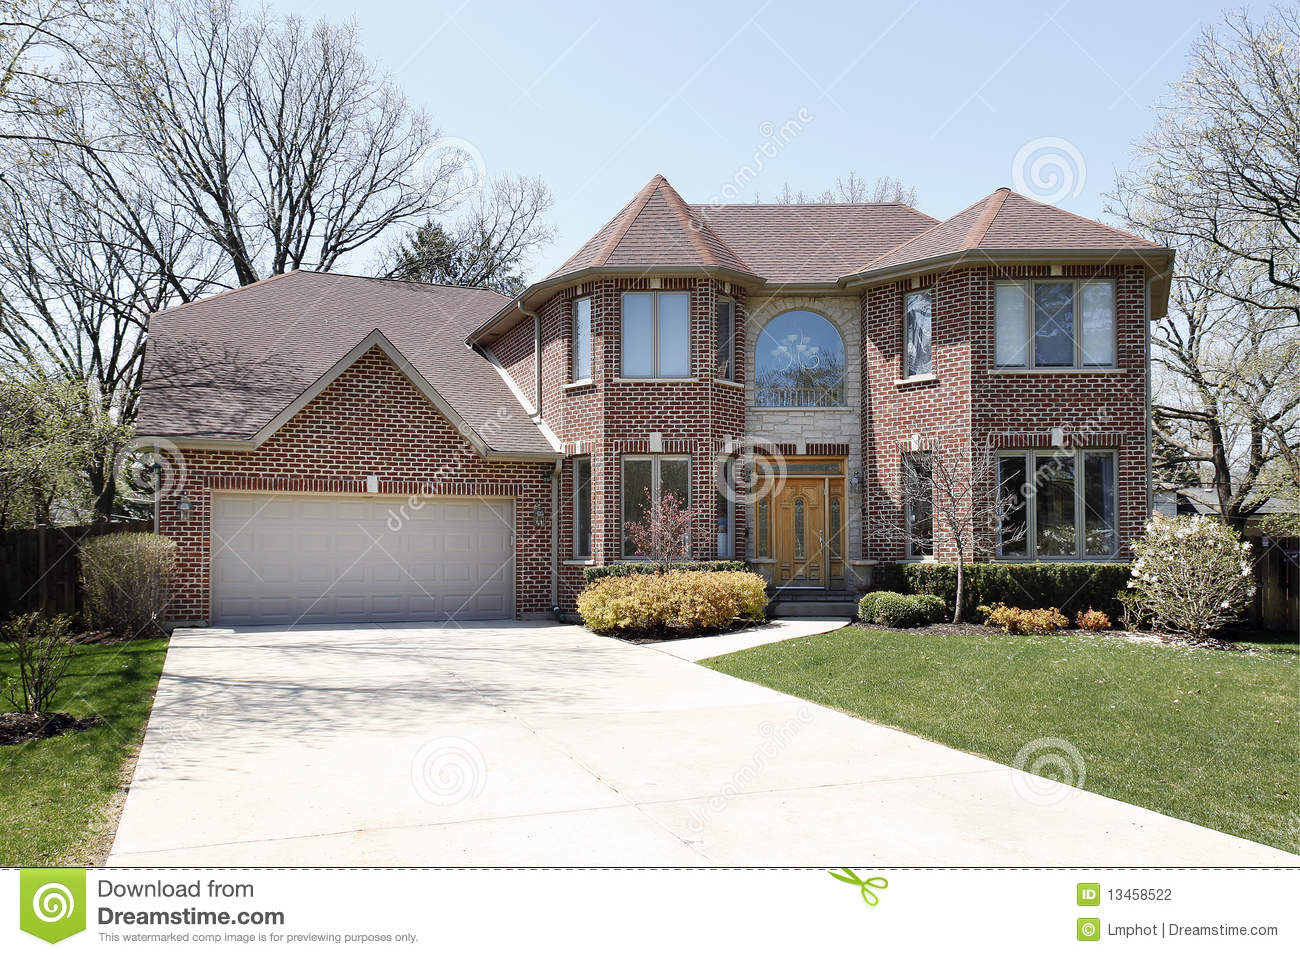 Brick Home With Stone Entryway Stock Photography - Image: 13458522